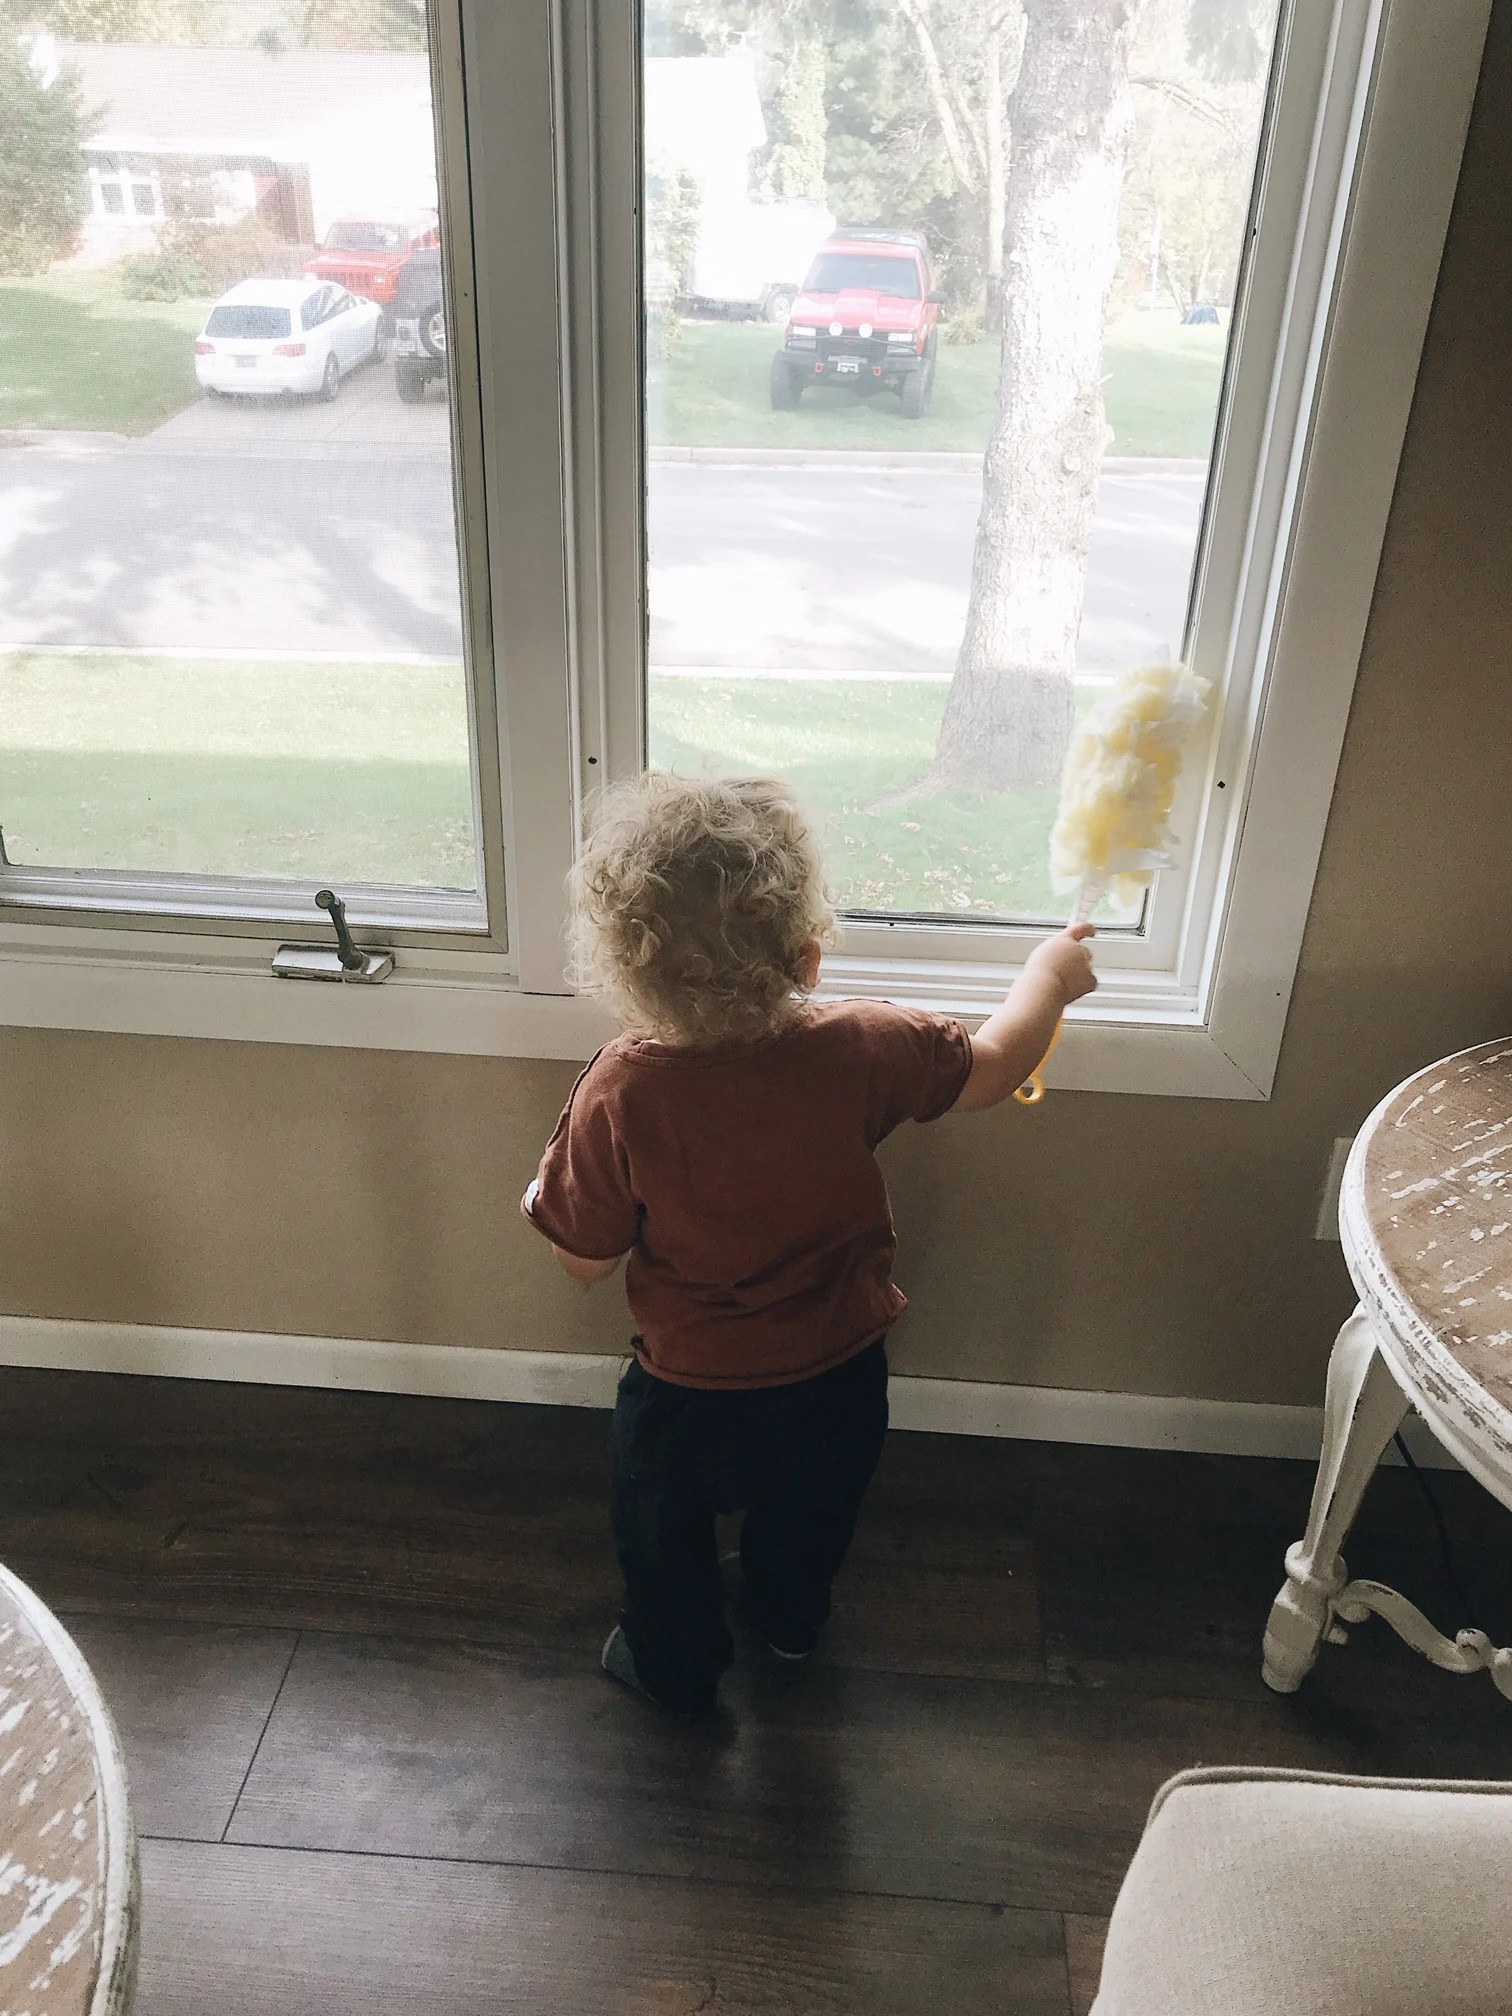 dusting the window